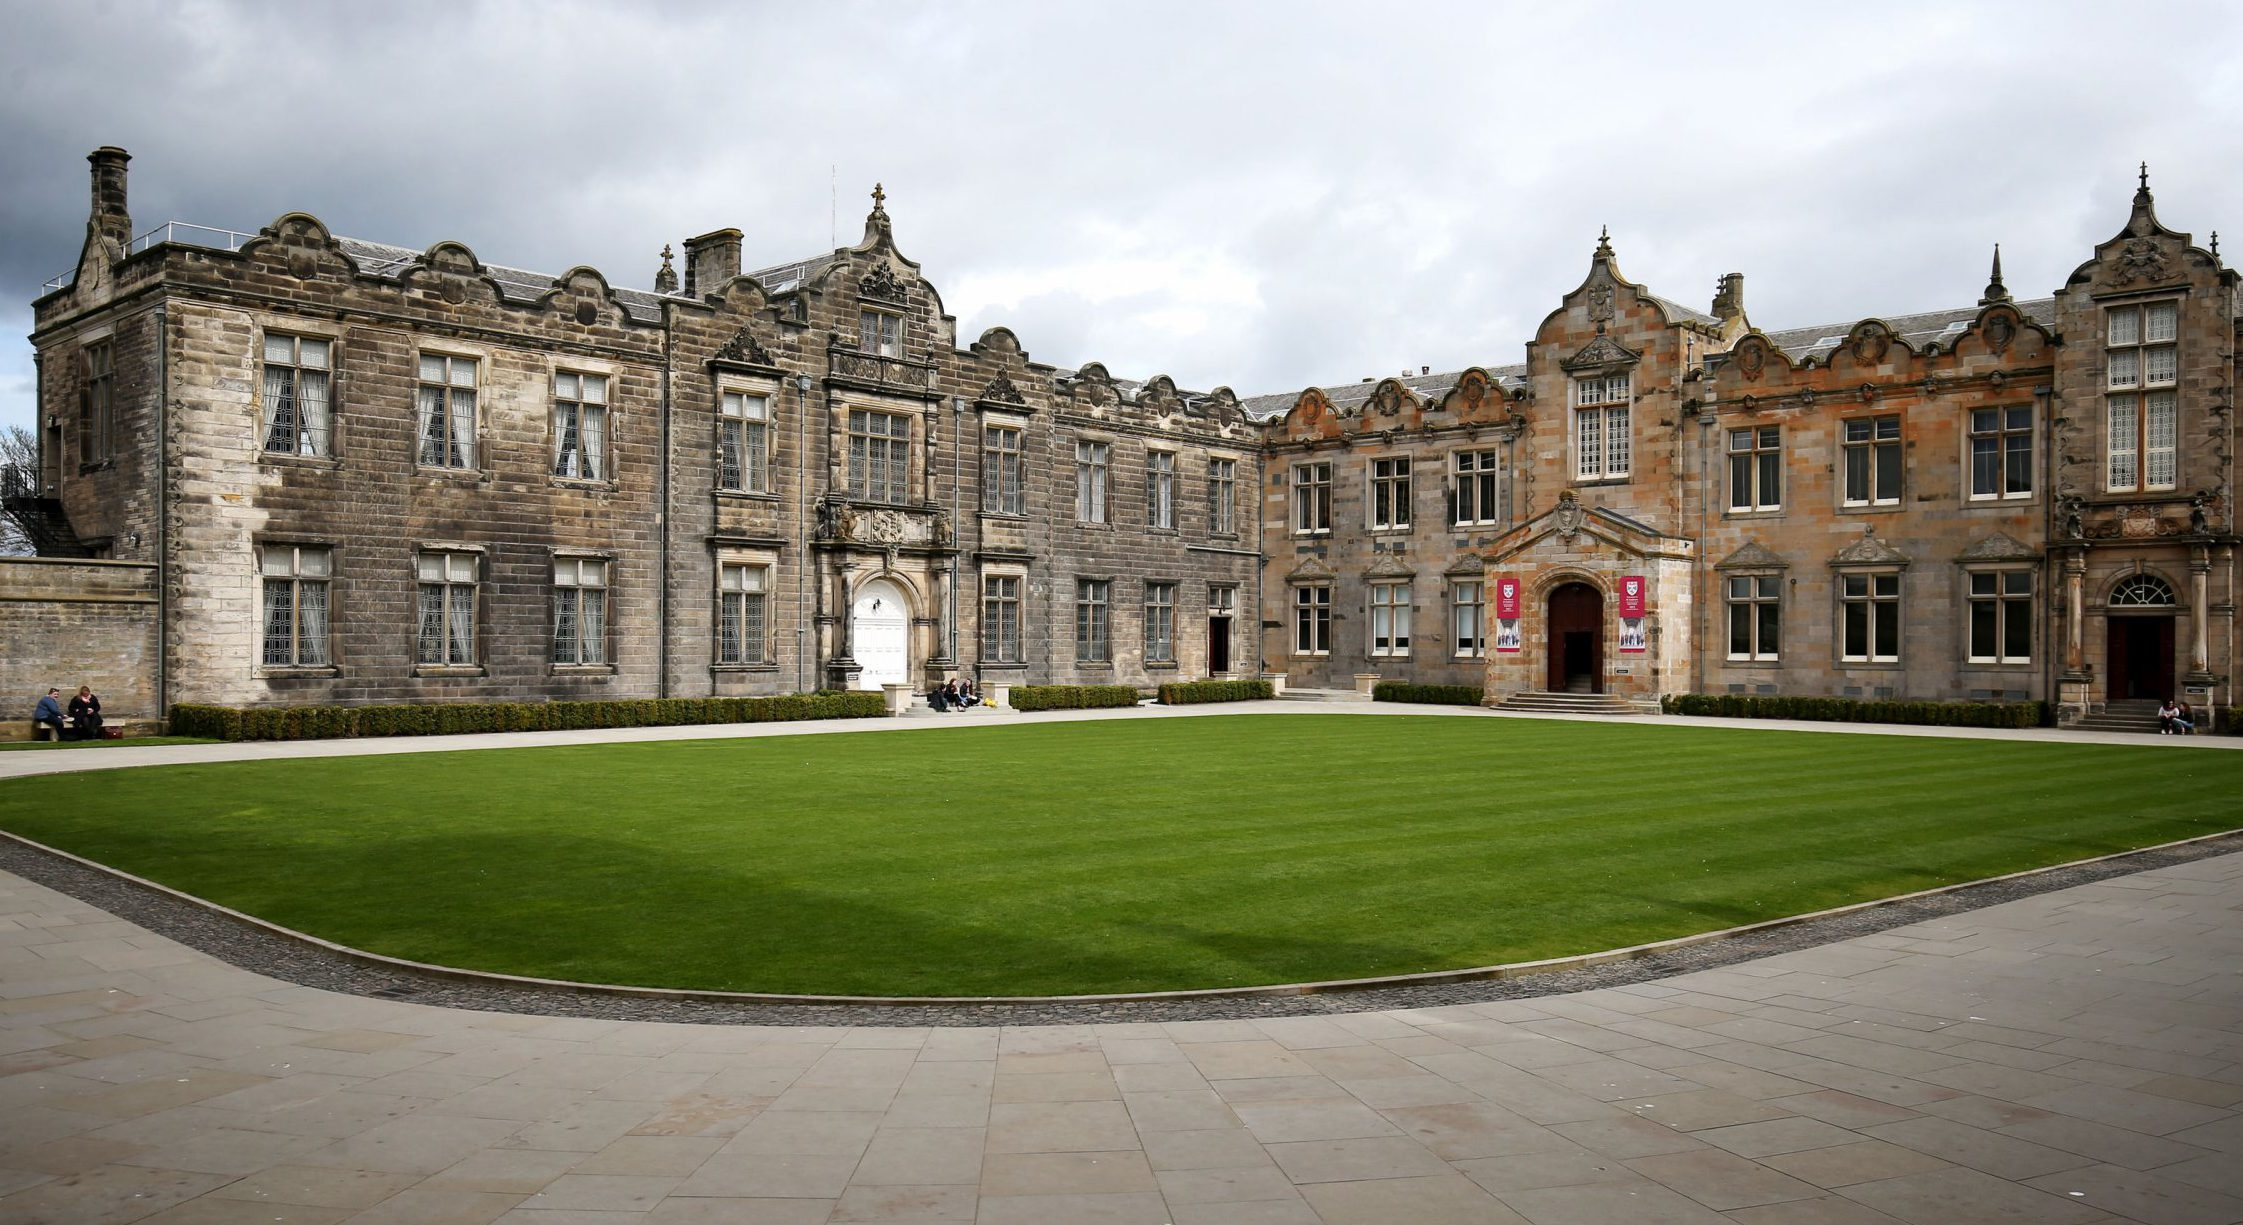 A general view of the Lower and Upper College Halls at the University of St Andrews. The University of St Andrews is top in Scotland and one of the five leading universities in the UK according to the new Complete University Guide's league table.